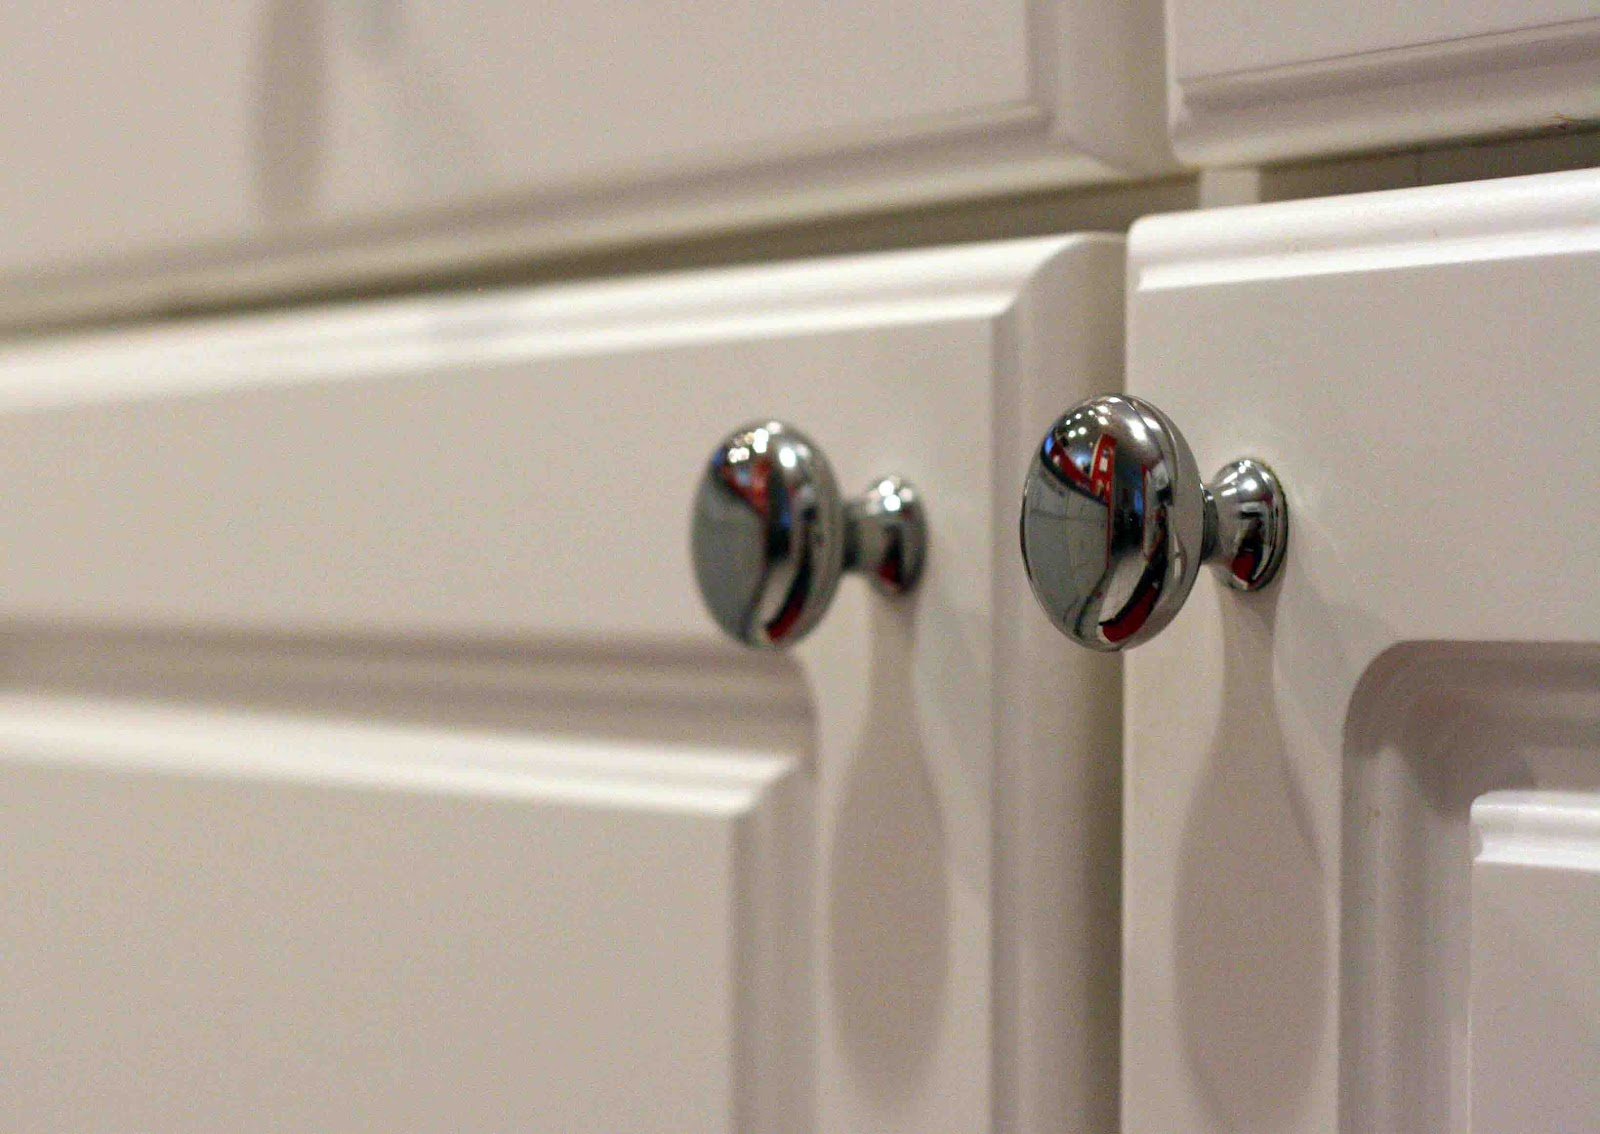 Kitchen Cabinet Knobs And Handles Michael Nash Design Build And Homes Fairfax Virginia